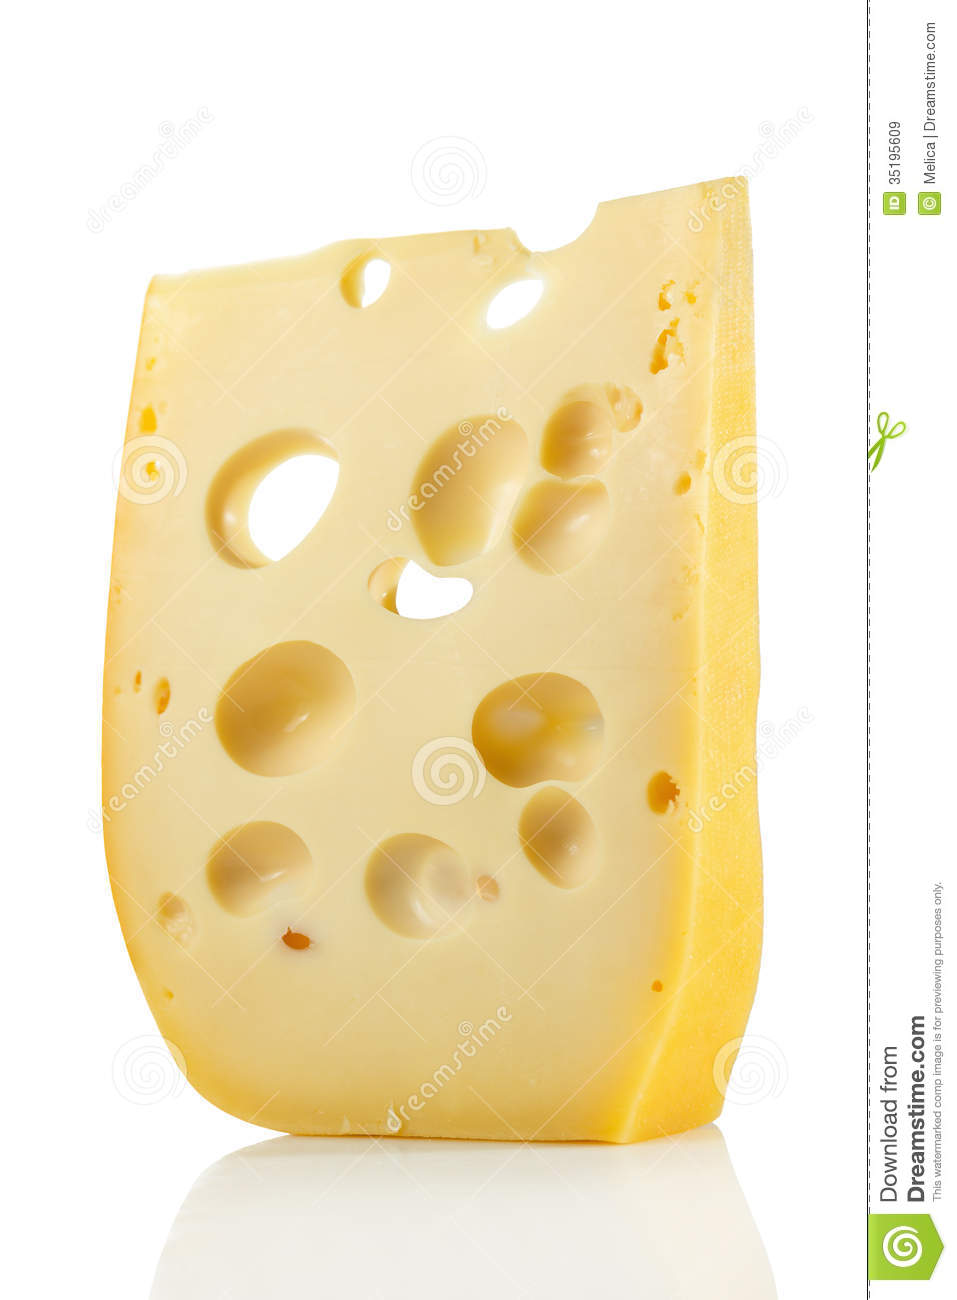 Swiss Cheese Royalty Free Stock Images.